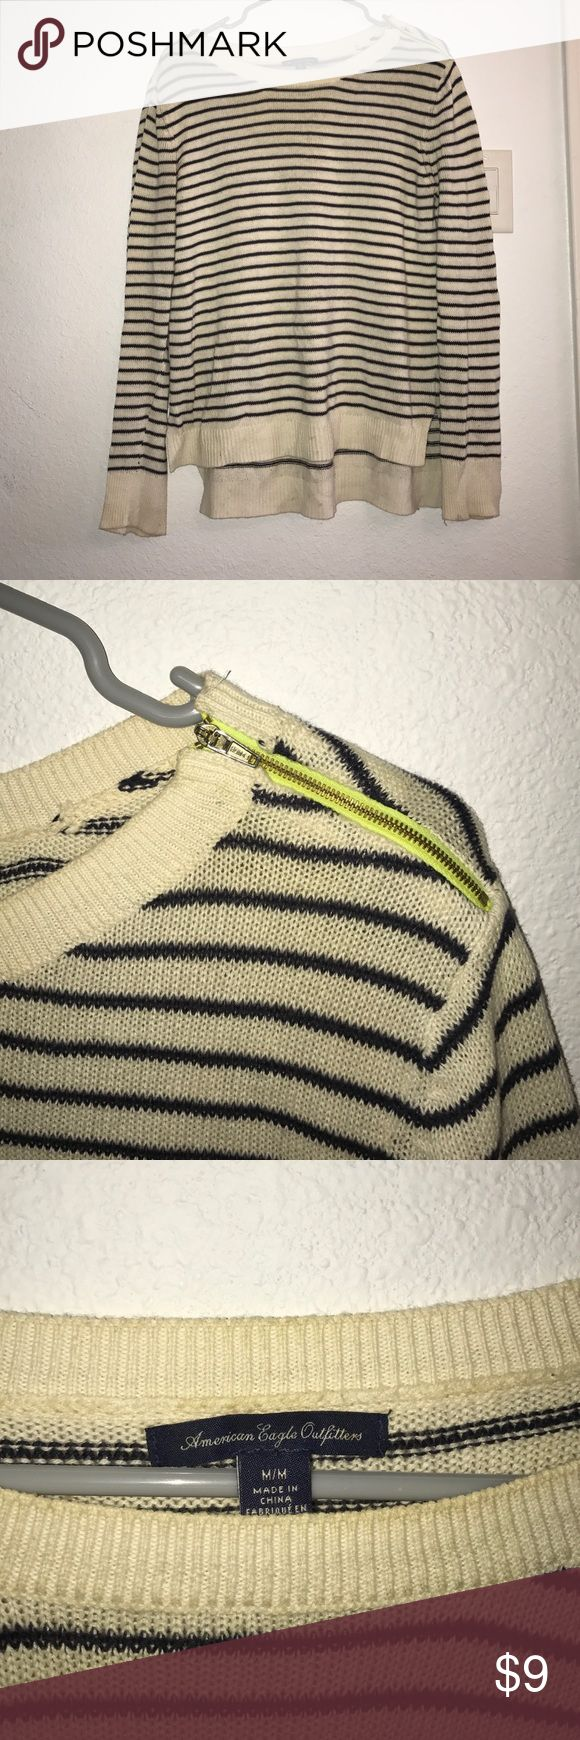 American Eagle Trendy Striped Sweater! EUC, just needs to be run through the washing mashing (which I will do and update pics soon!) 💕Make me an offer!💕I ship within 24 hours!!👍🏾😇 There is an automatic discount for bundles!!😘💖👏🏽 American Eagle Outfitters Sweaters Crew & Scoop Necks